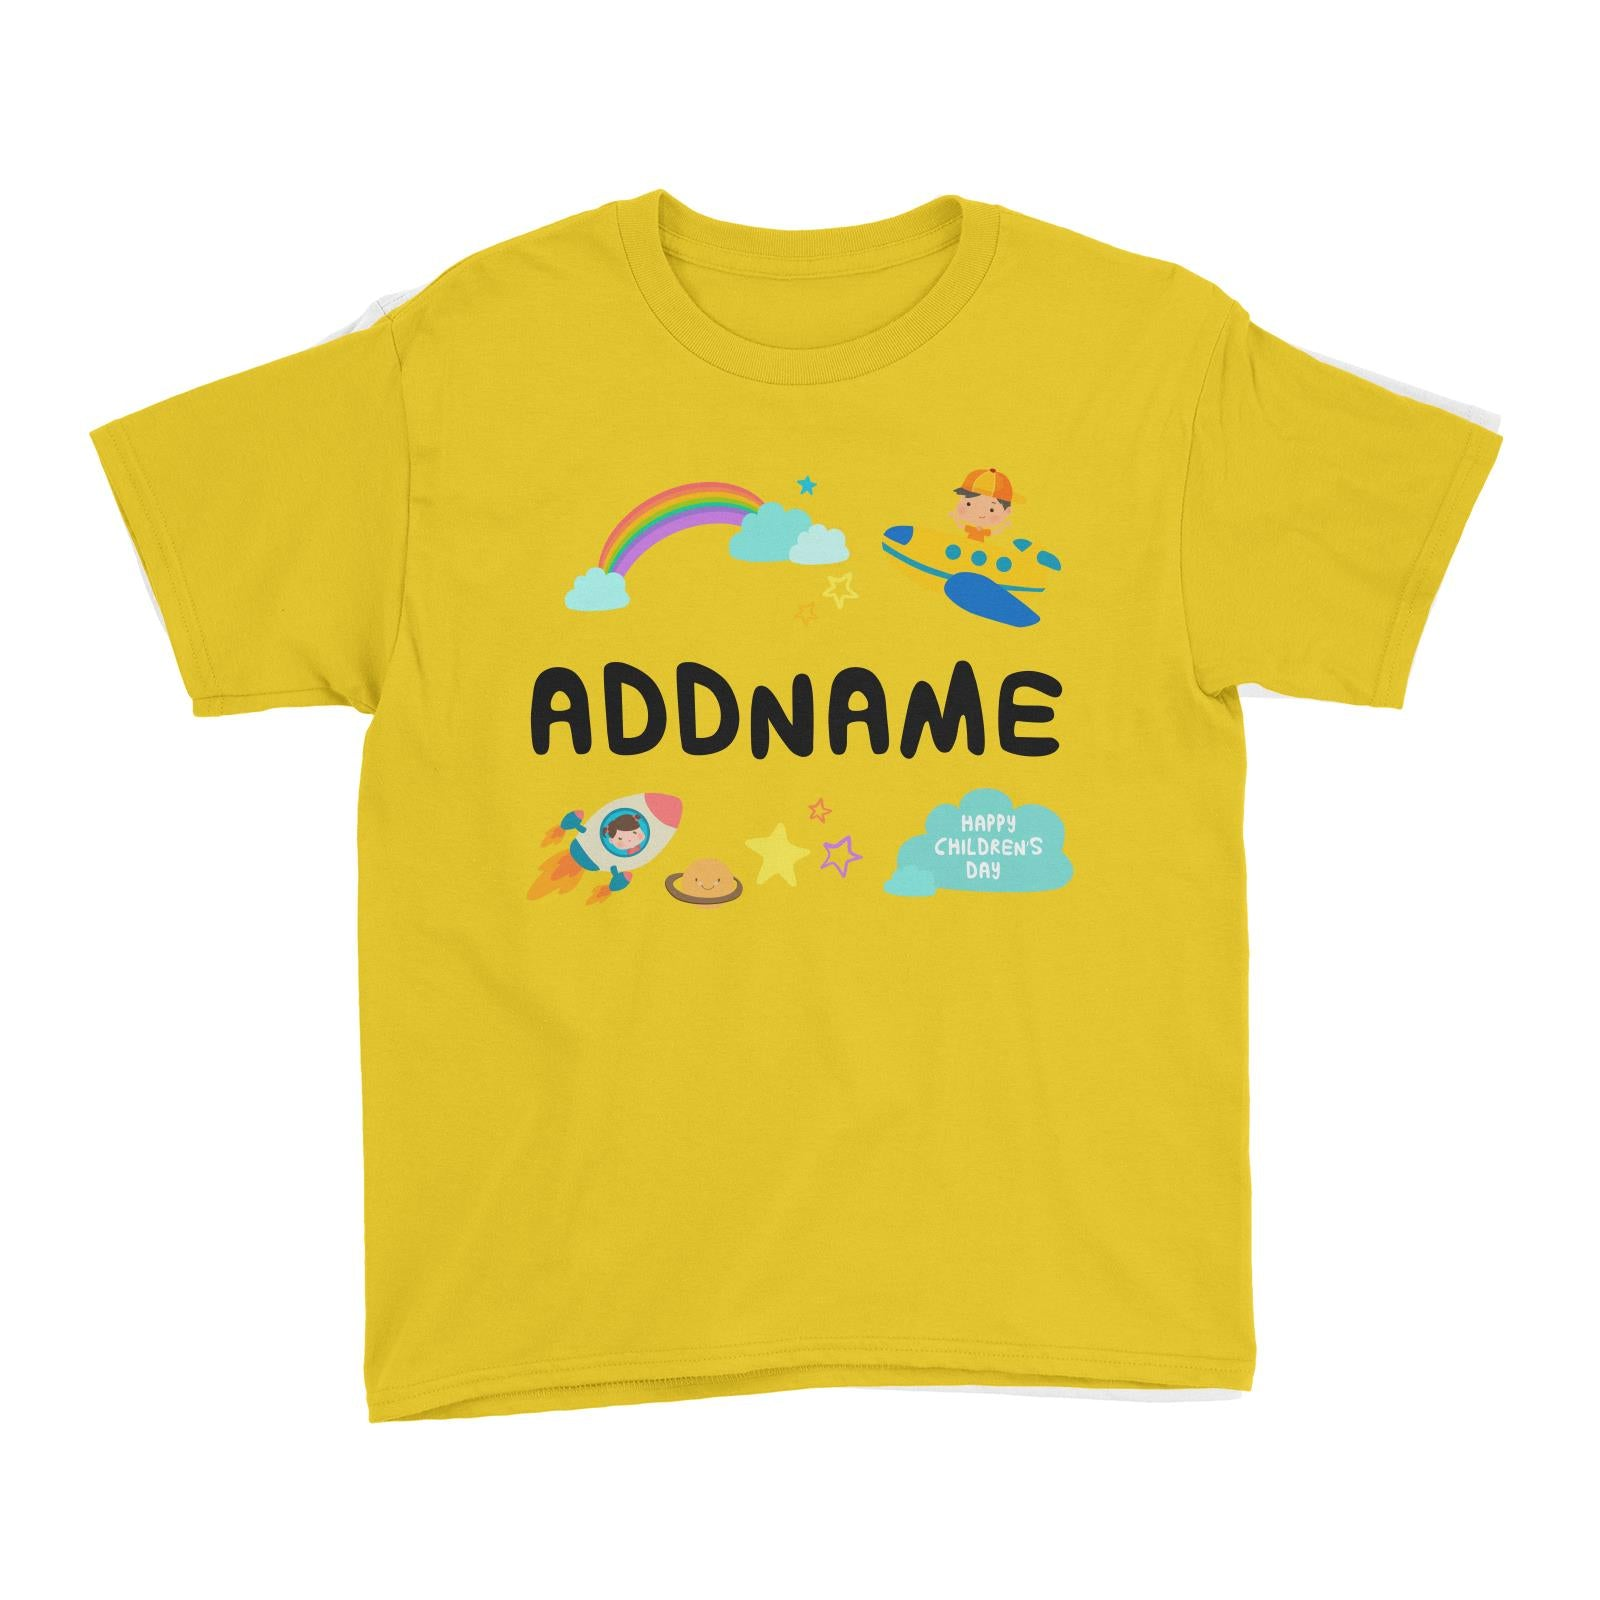 Children's Day Gift Series Adventure Boy Space Rainbow Addname Kid's T-Shirt